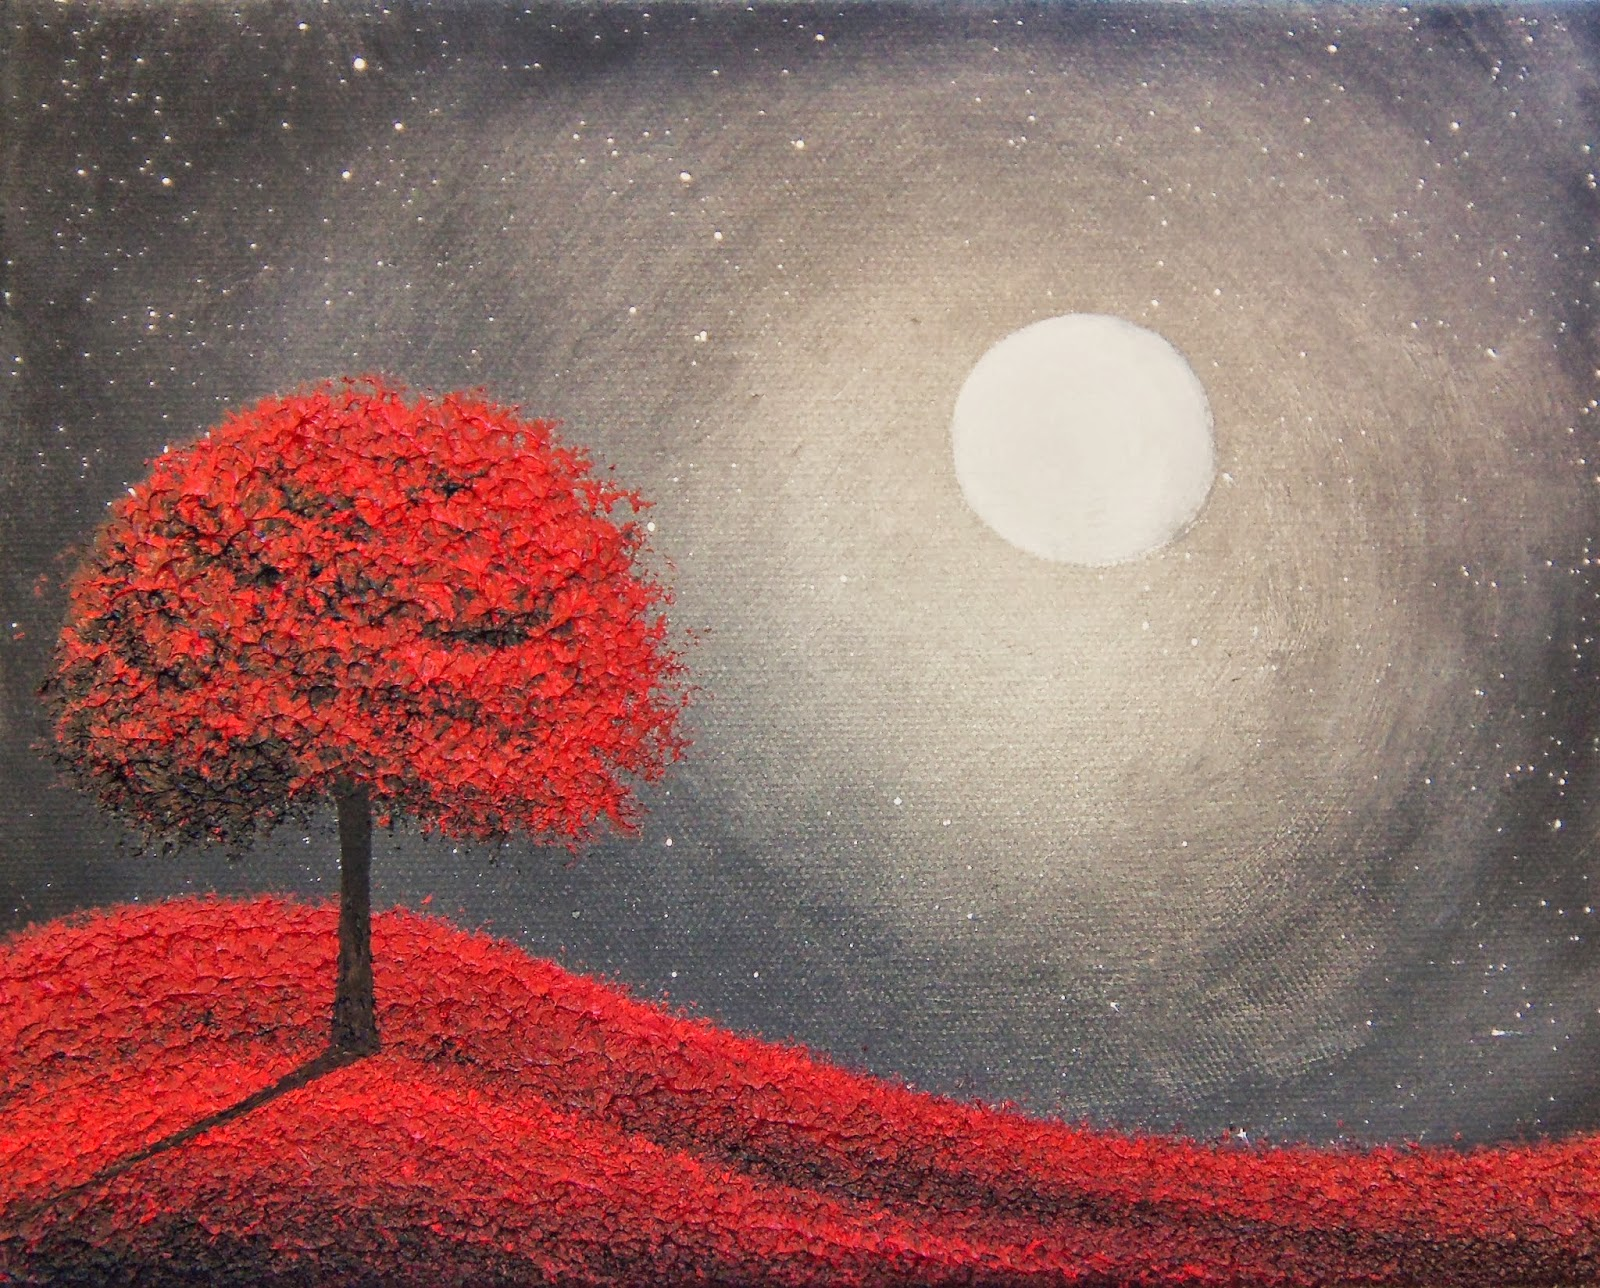 Bing art by rachel bingaman starry sky dark art black for Paint a dark picture